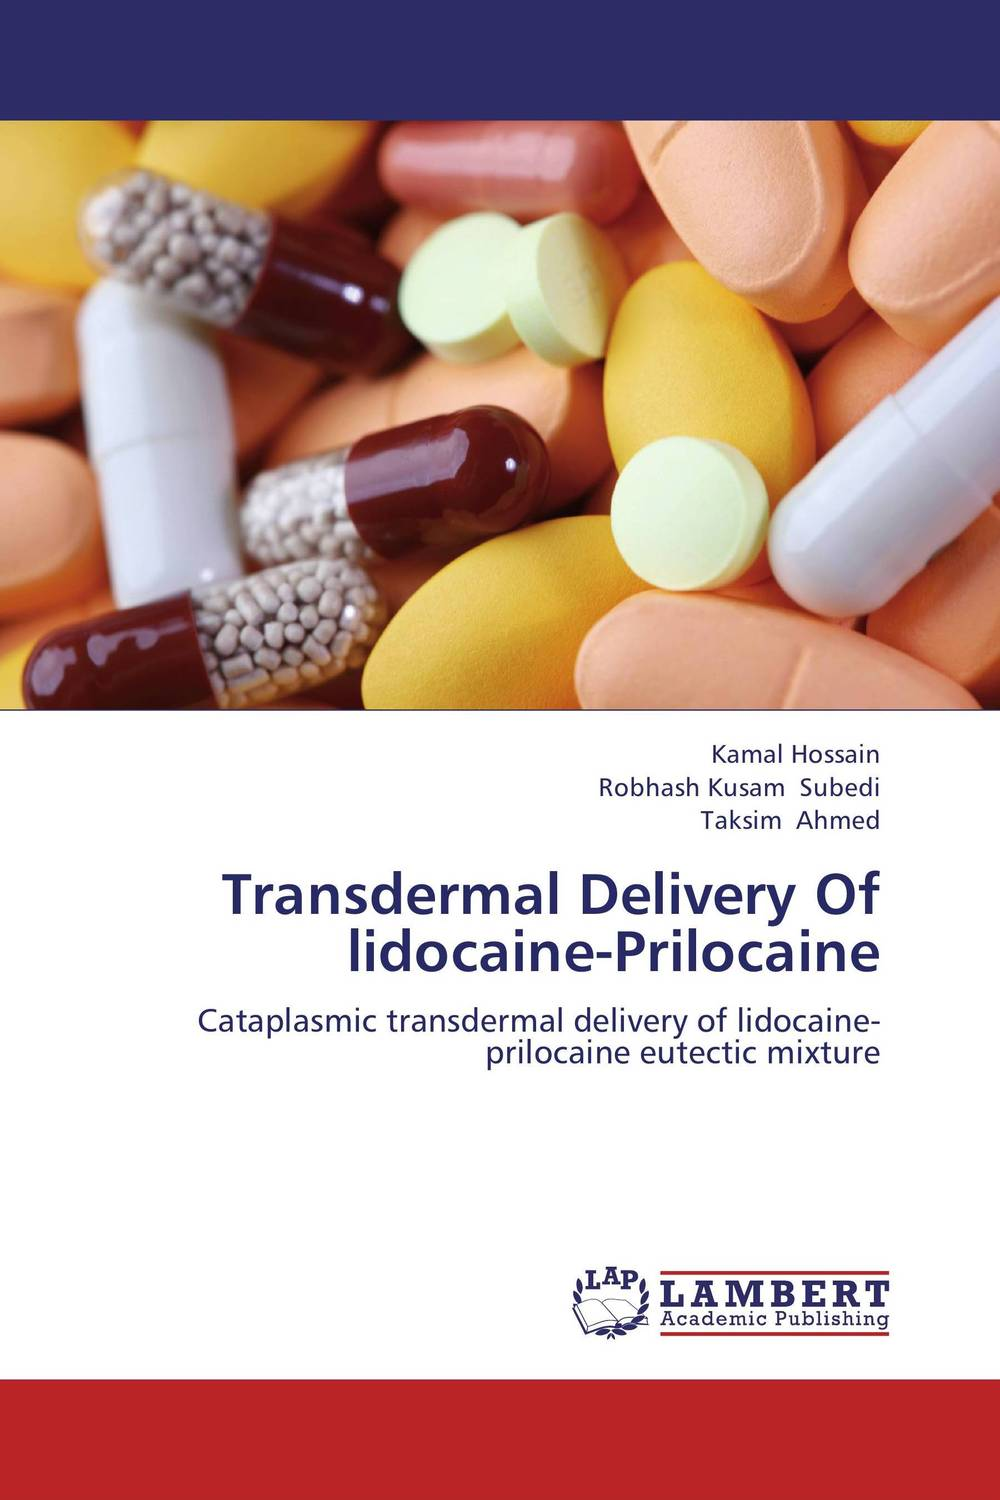 Transdermal Delivery Of lidocaine-Prilocaine amit kumar singh chitosan membrane permeated transdermal drug delivery of ondansetron